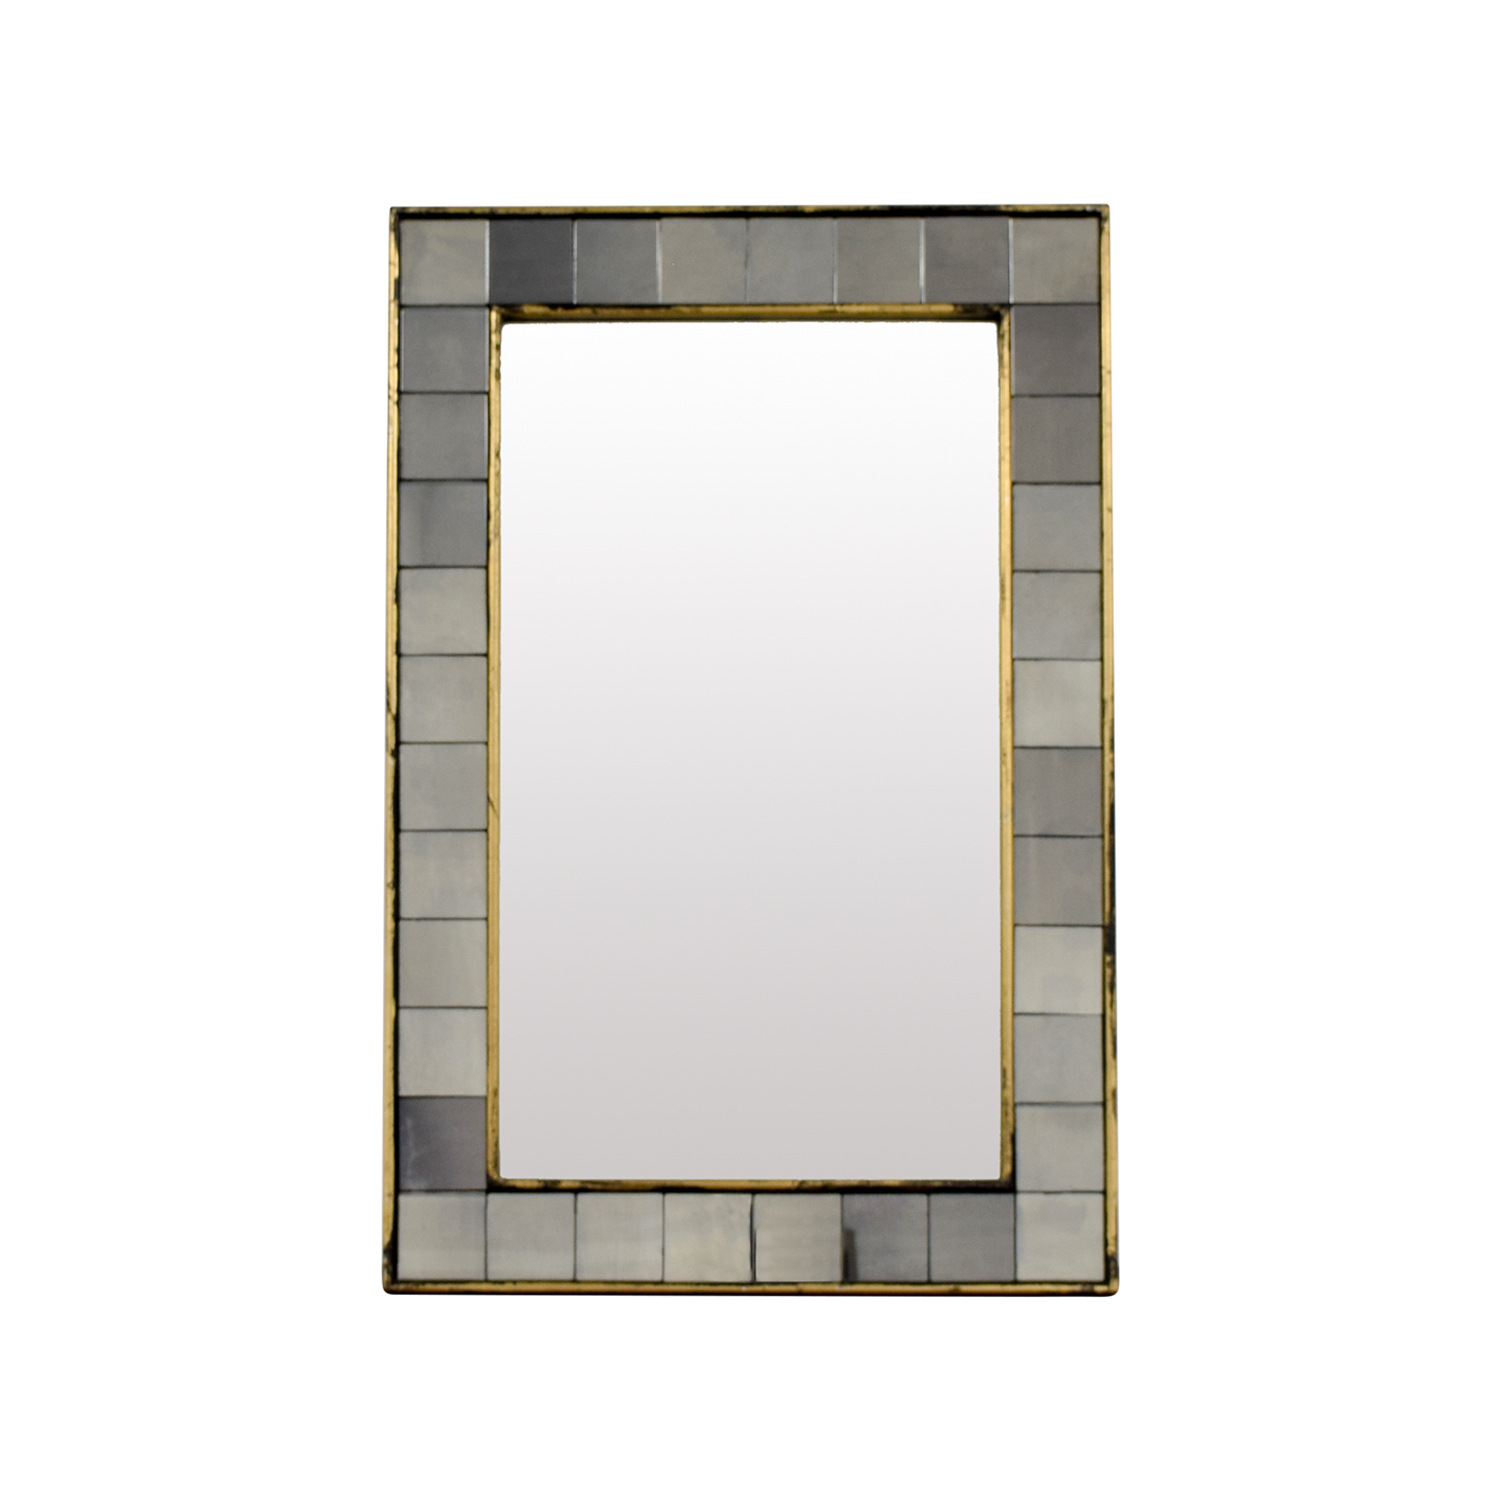 West Elm West Elm Antique Tiled Wall Mirror used